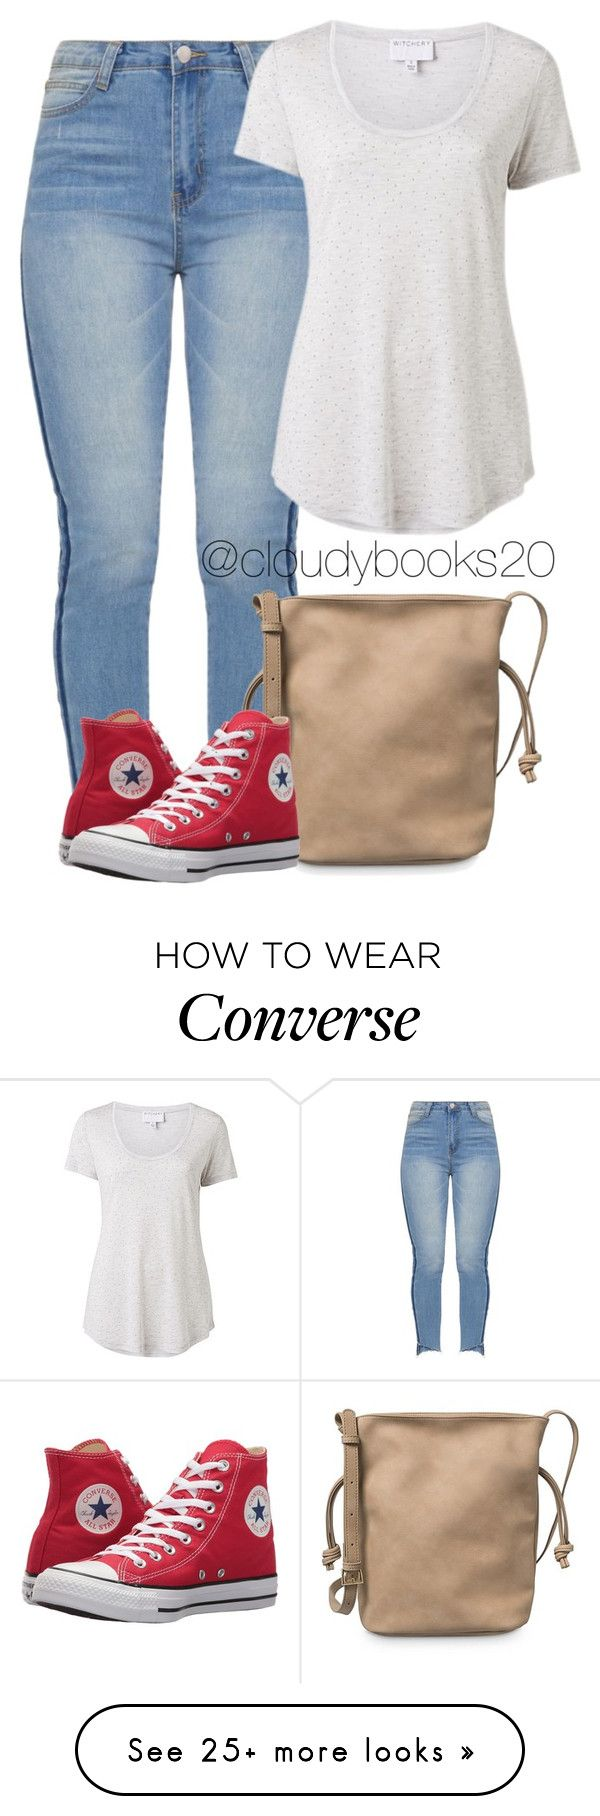 """A Casual Time"" by cloudybooks on Polyvore featuring Witchery and Converse"